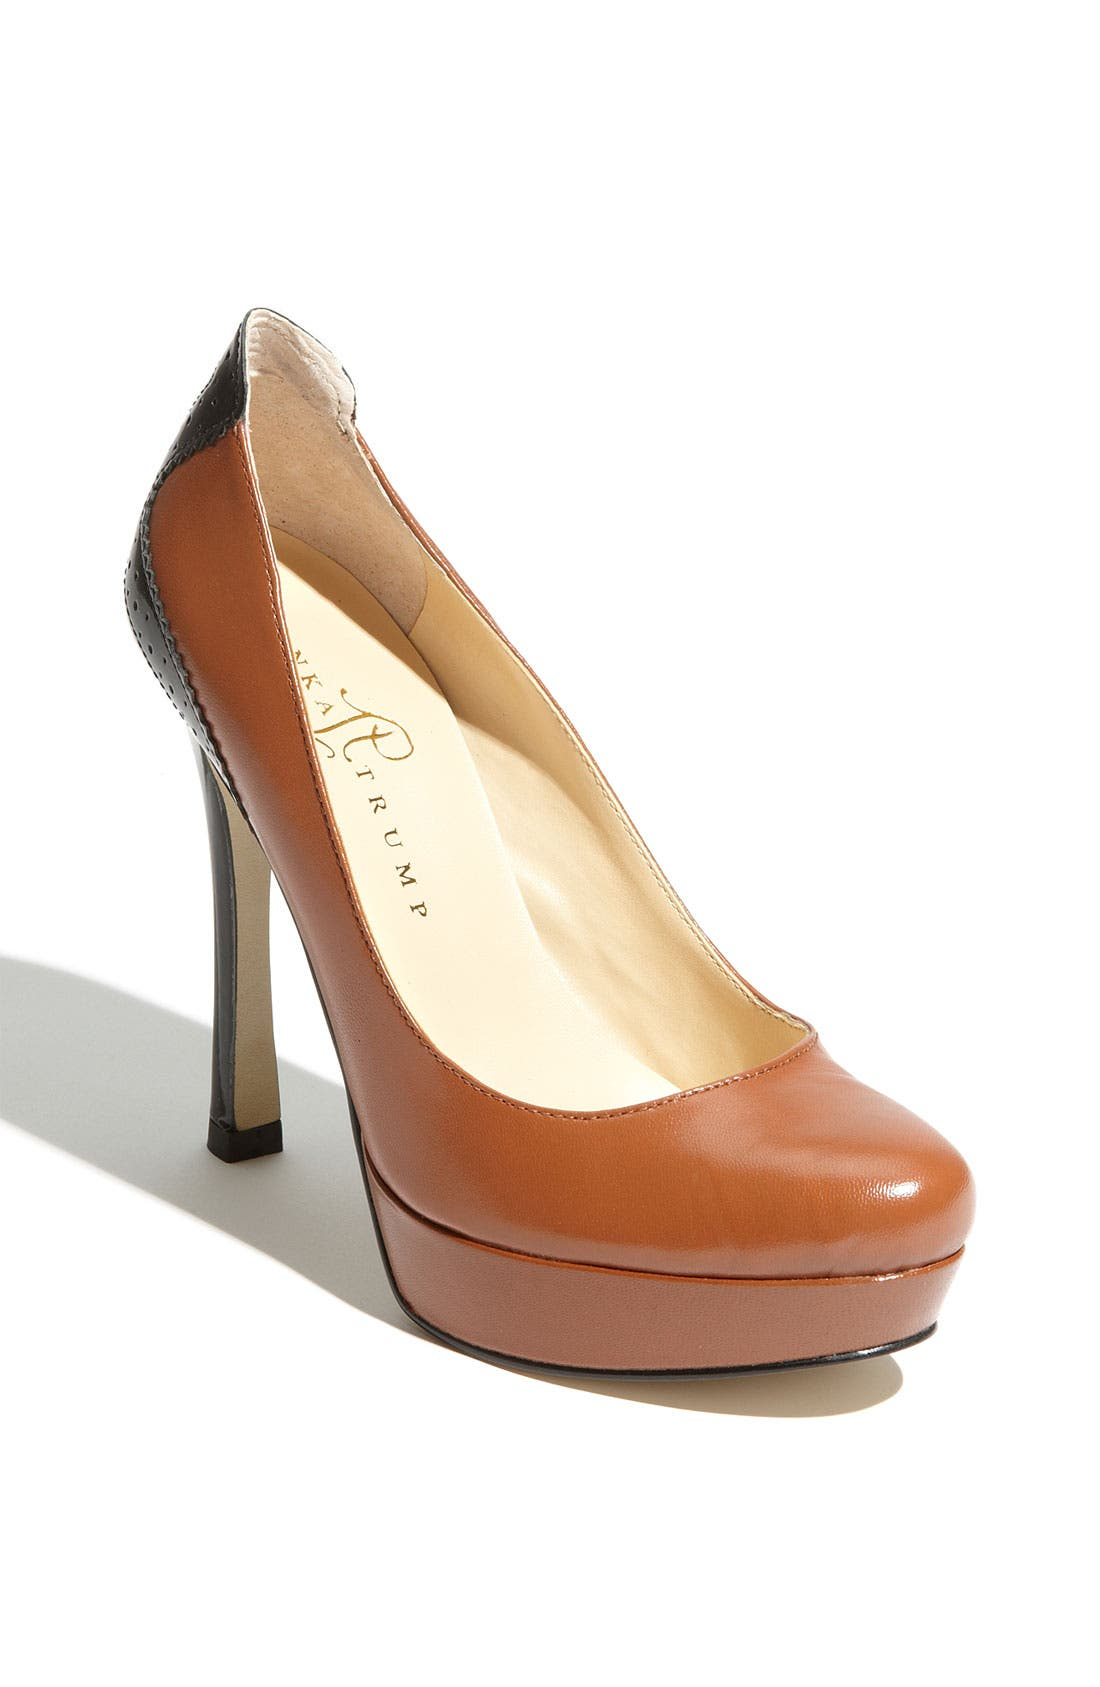 Alternate Image 1 Selected - Ivanka Trump 'Tesi' Pump